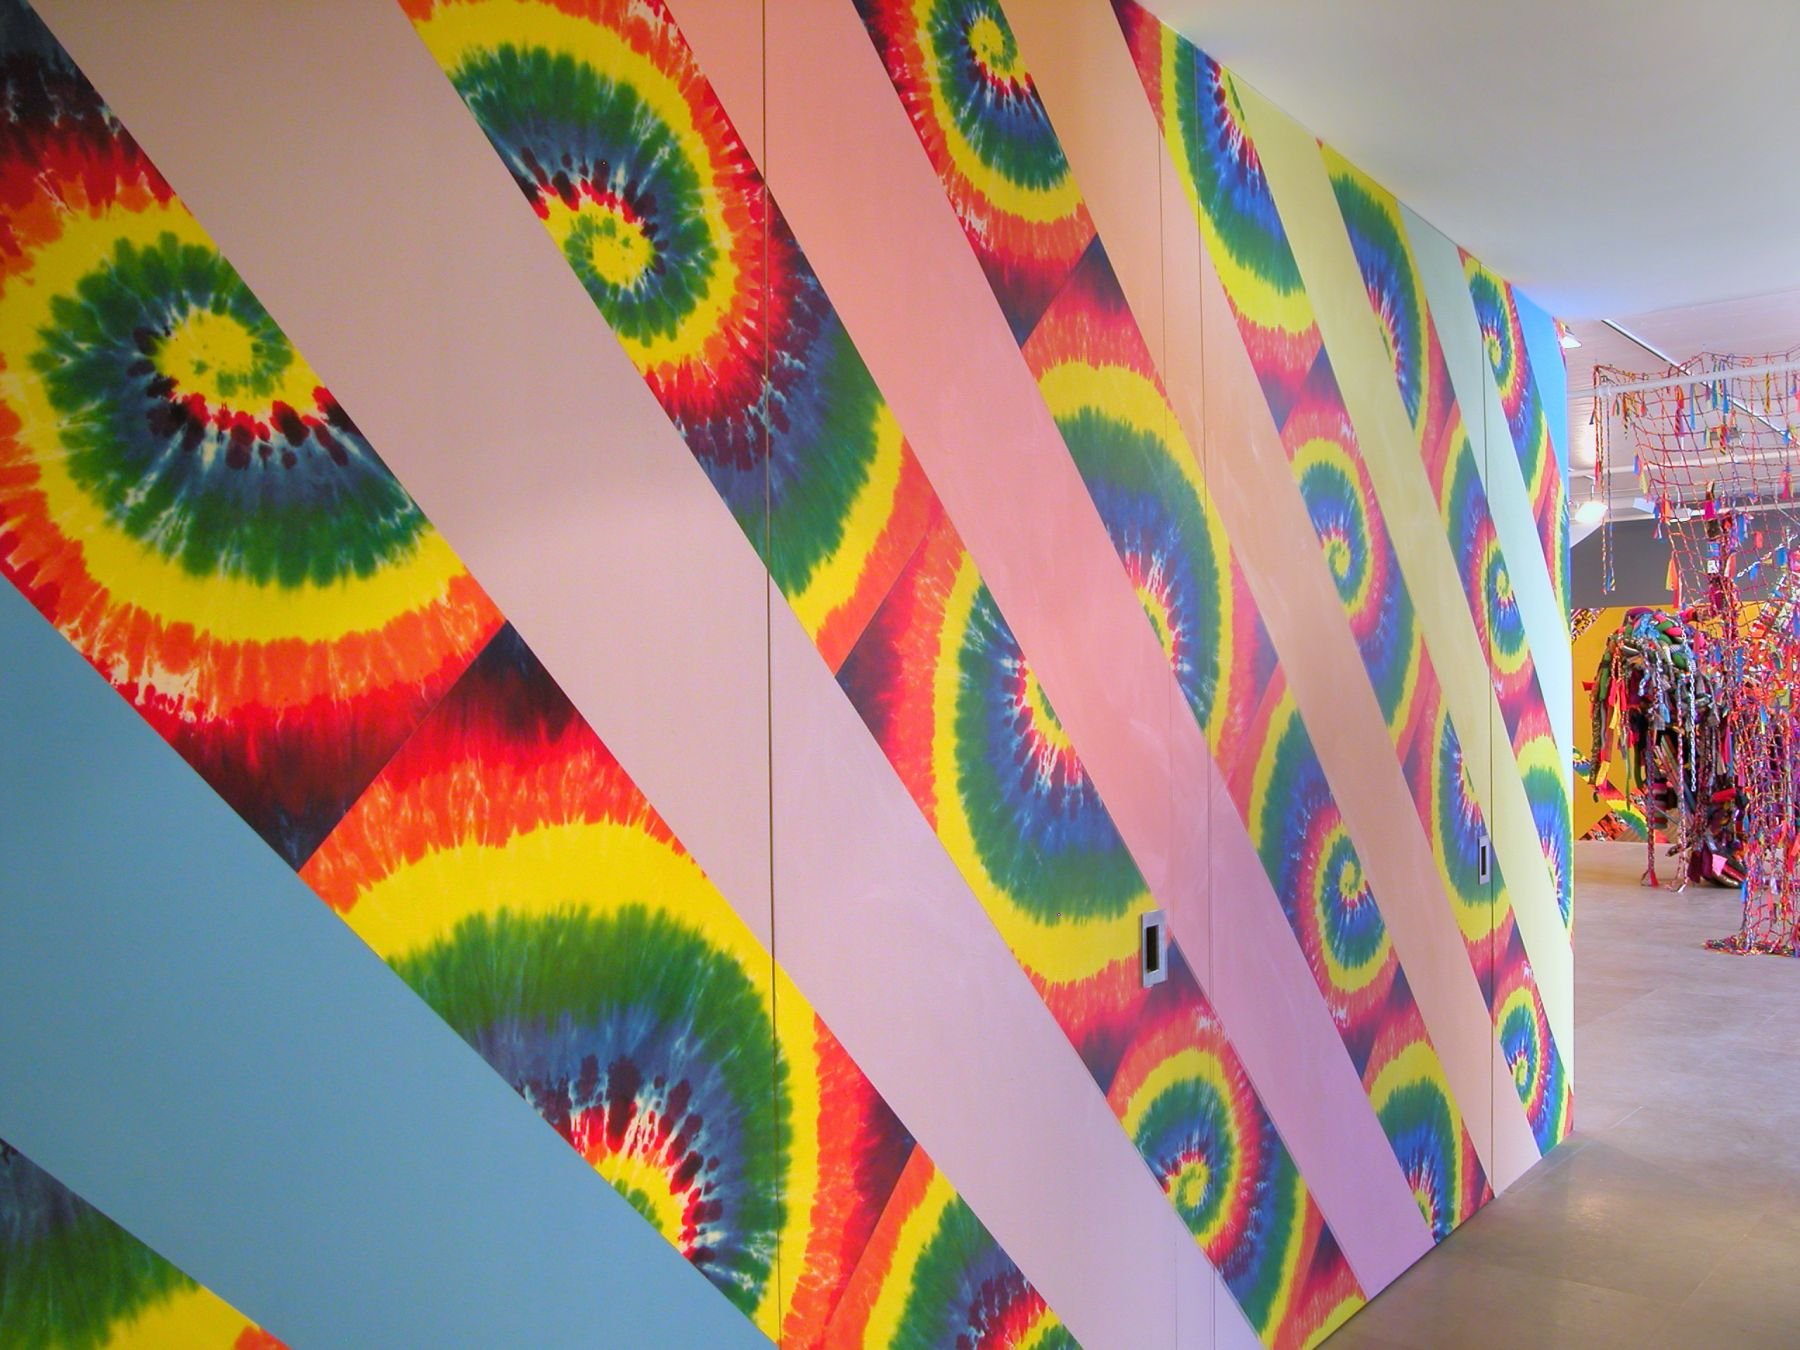 Jim Drain, I Would Gnaw on My Hand (Hallway), 2007, tie-dye and leopard print wallpaper, latex paint, Dimensions variable, Installation view, Greene Naftali, New York, 2007